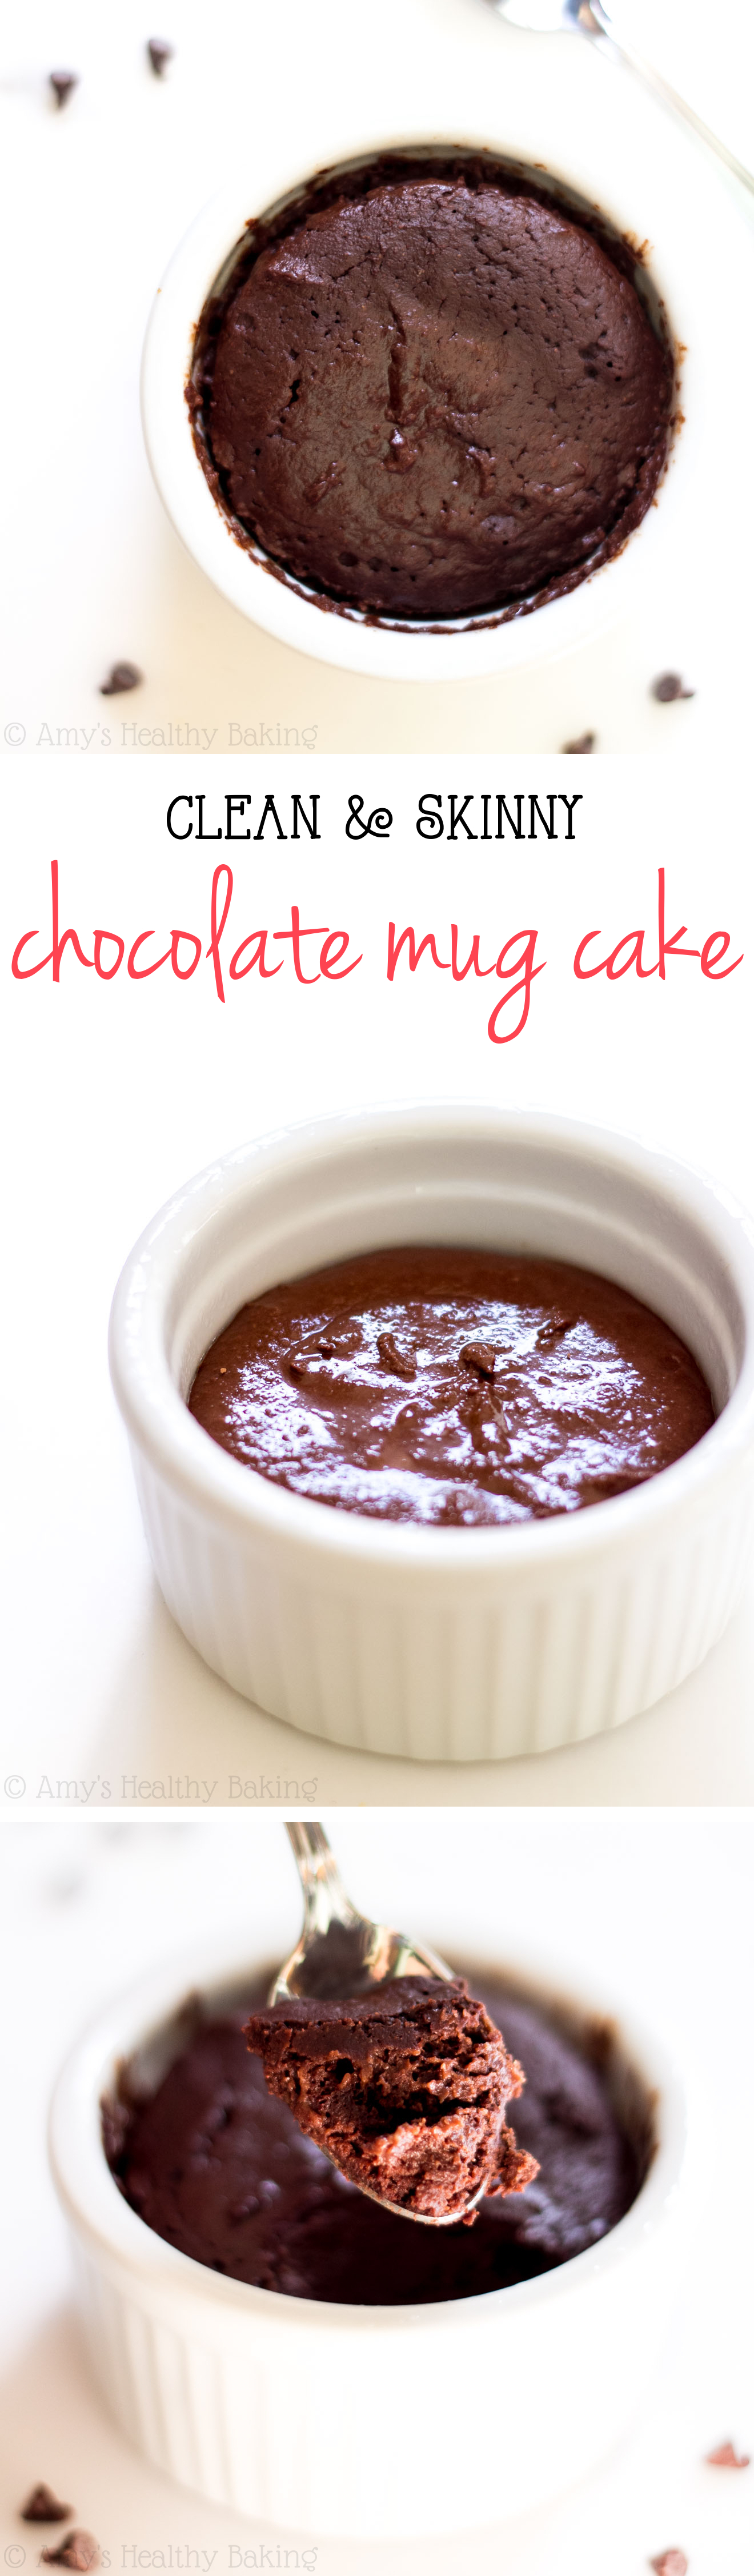 Single Serving Clean Chocolate Mug Cake Recipe Video Amy S Healthy Baking